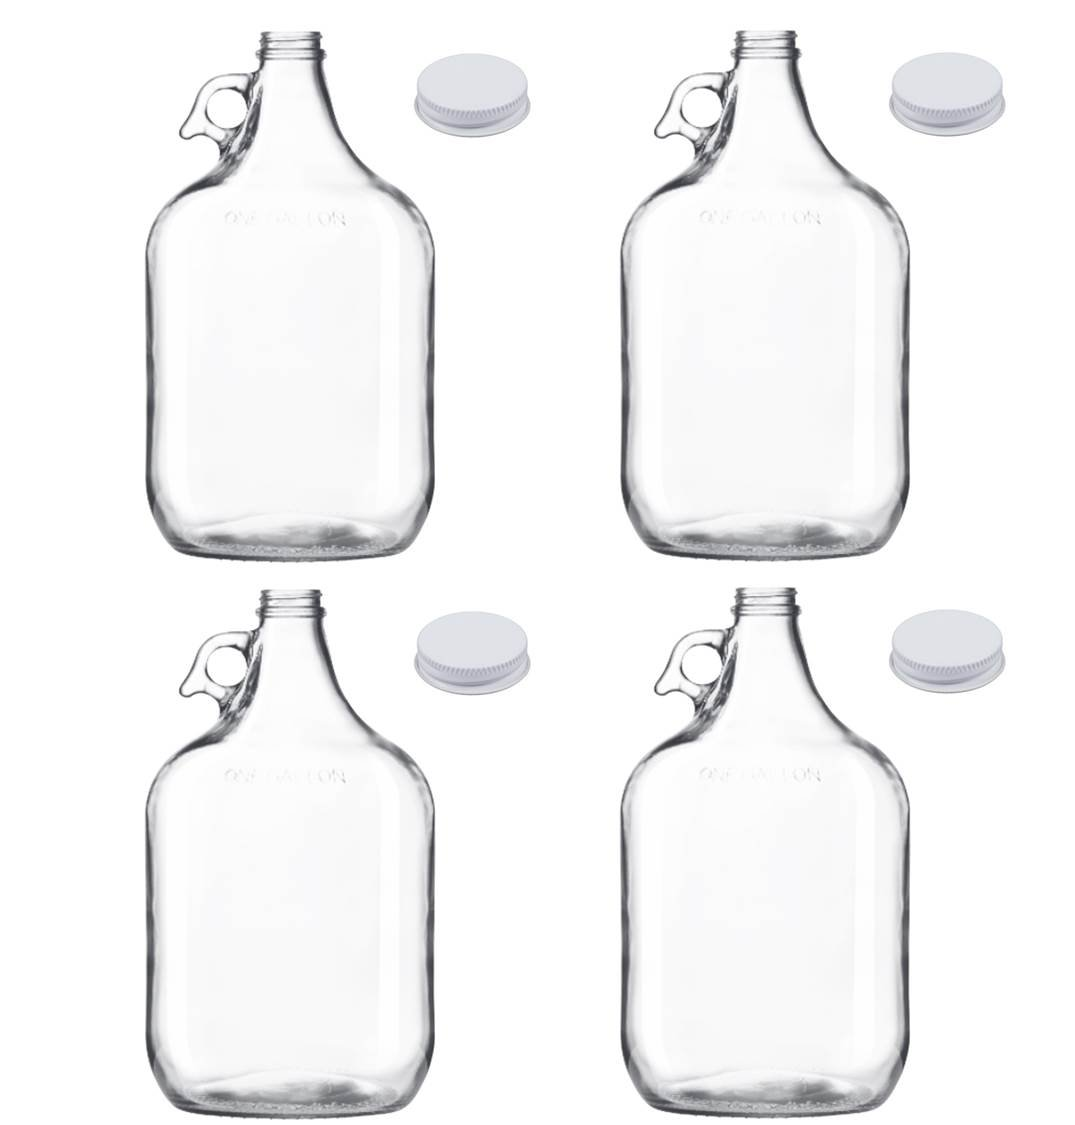 1-Gallon Heavy-Duty Clear Glass Growler Jug, Metal Cap/Liner, Made in USA (Set of 4) Owens Illinois